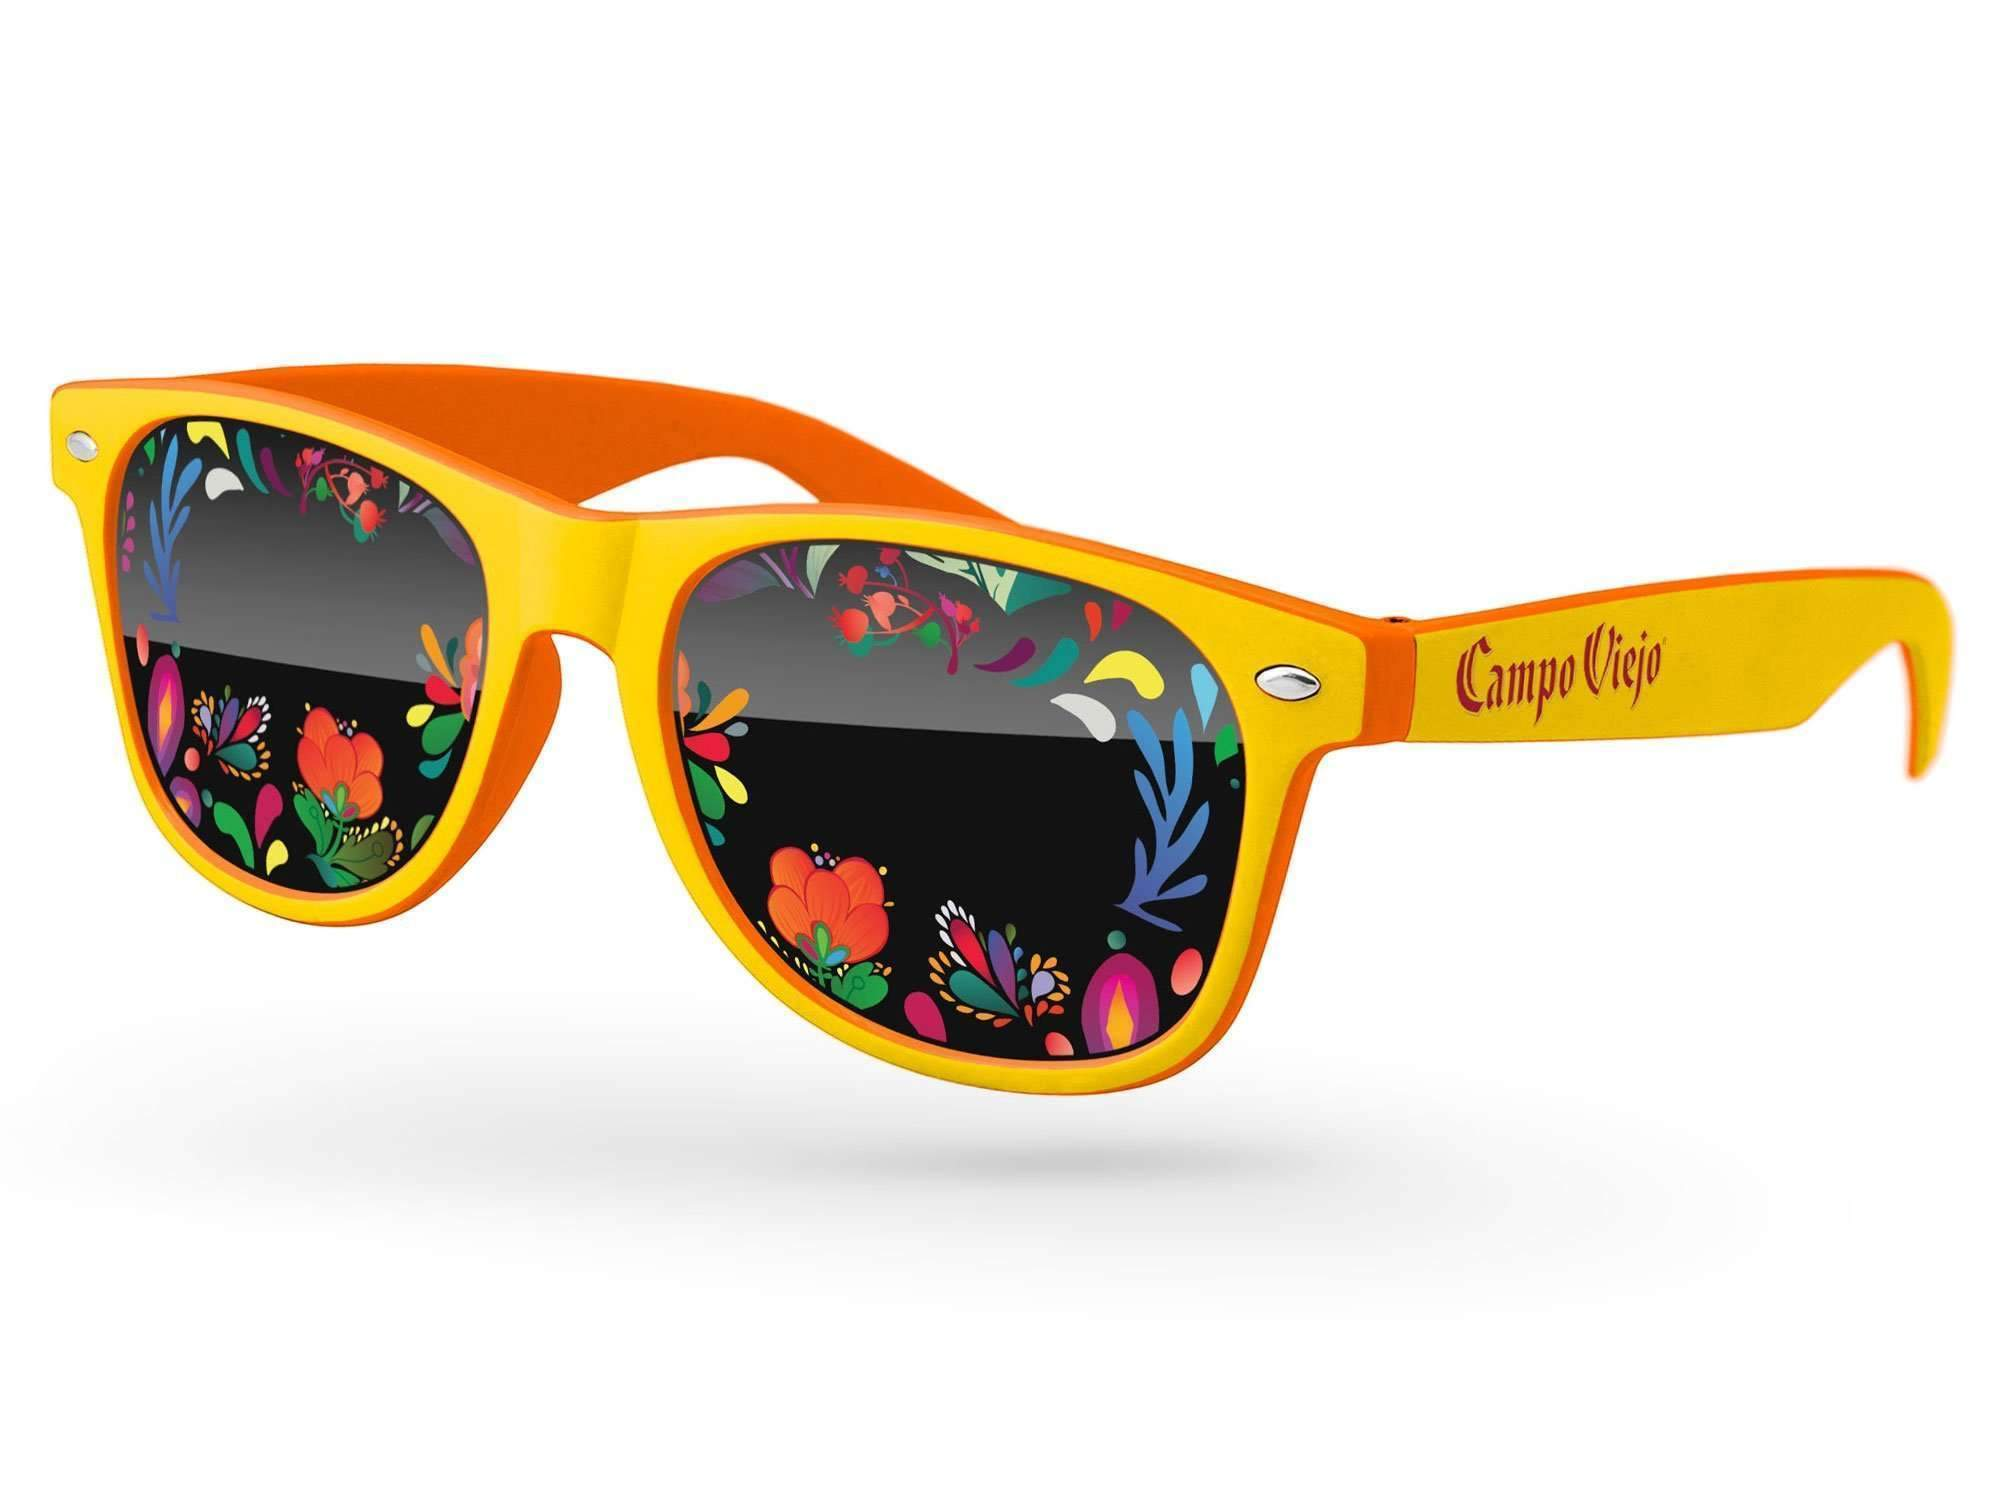 Food & Beverage - 2-tone Retro Promotional Sunglasses w/ full-color lens imprints & 1-color temple imprint